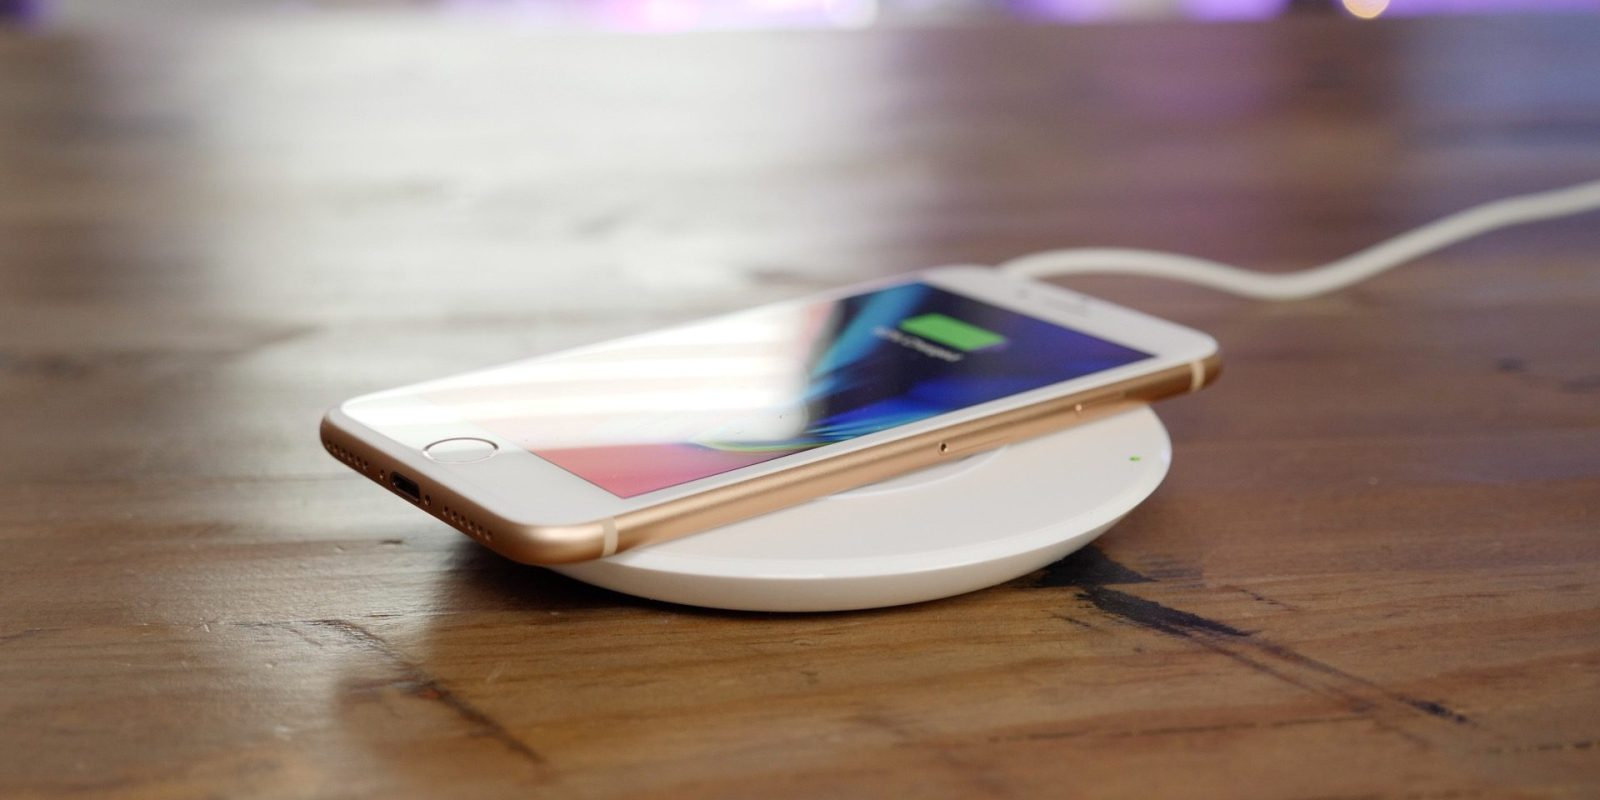 Early testing shows 7 5W 'fast' wireless charging has small effect